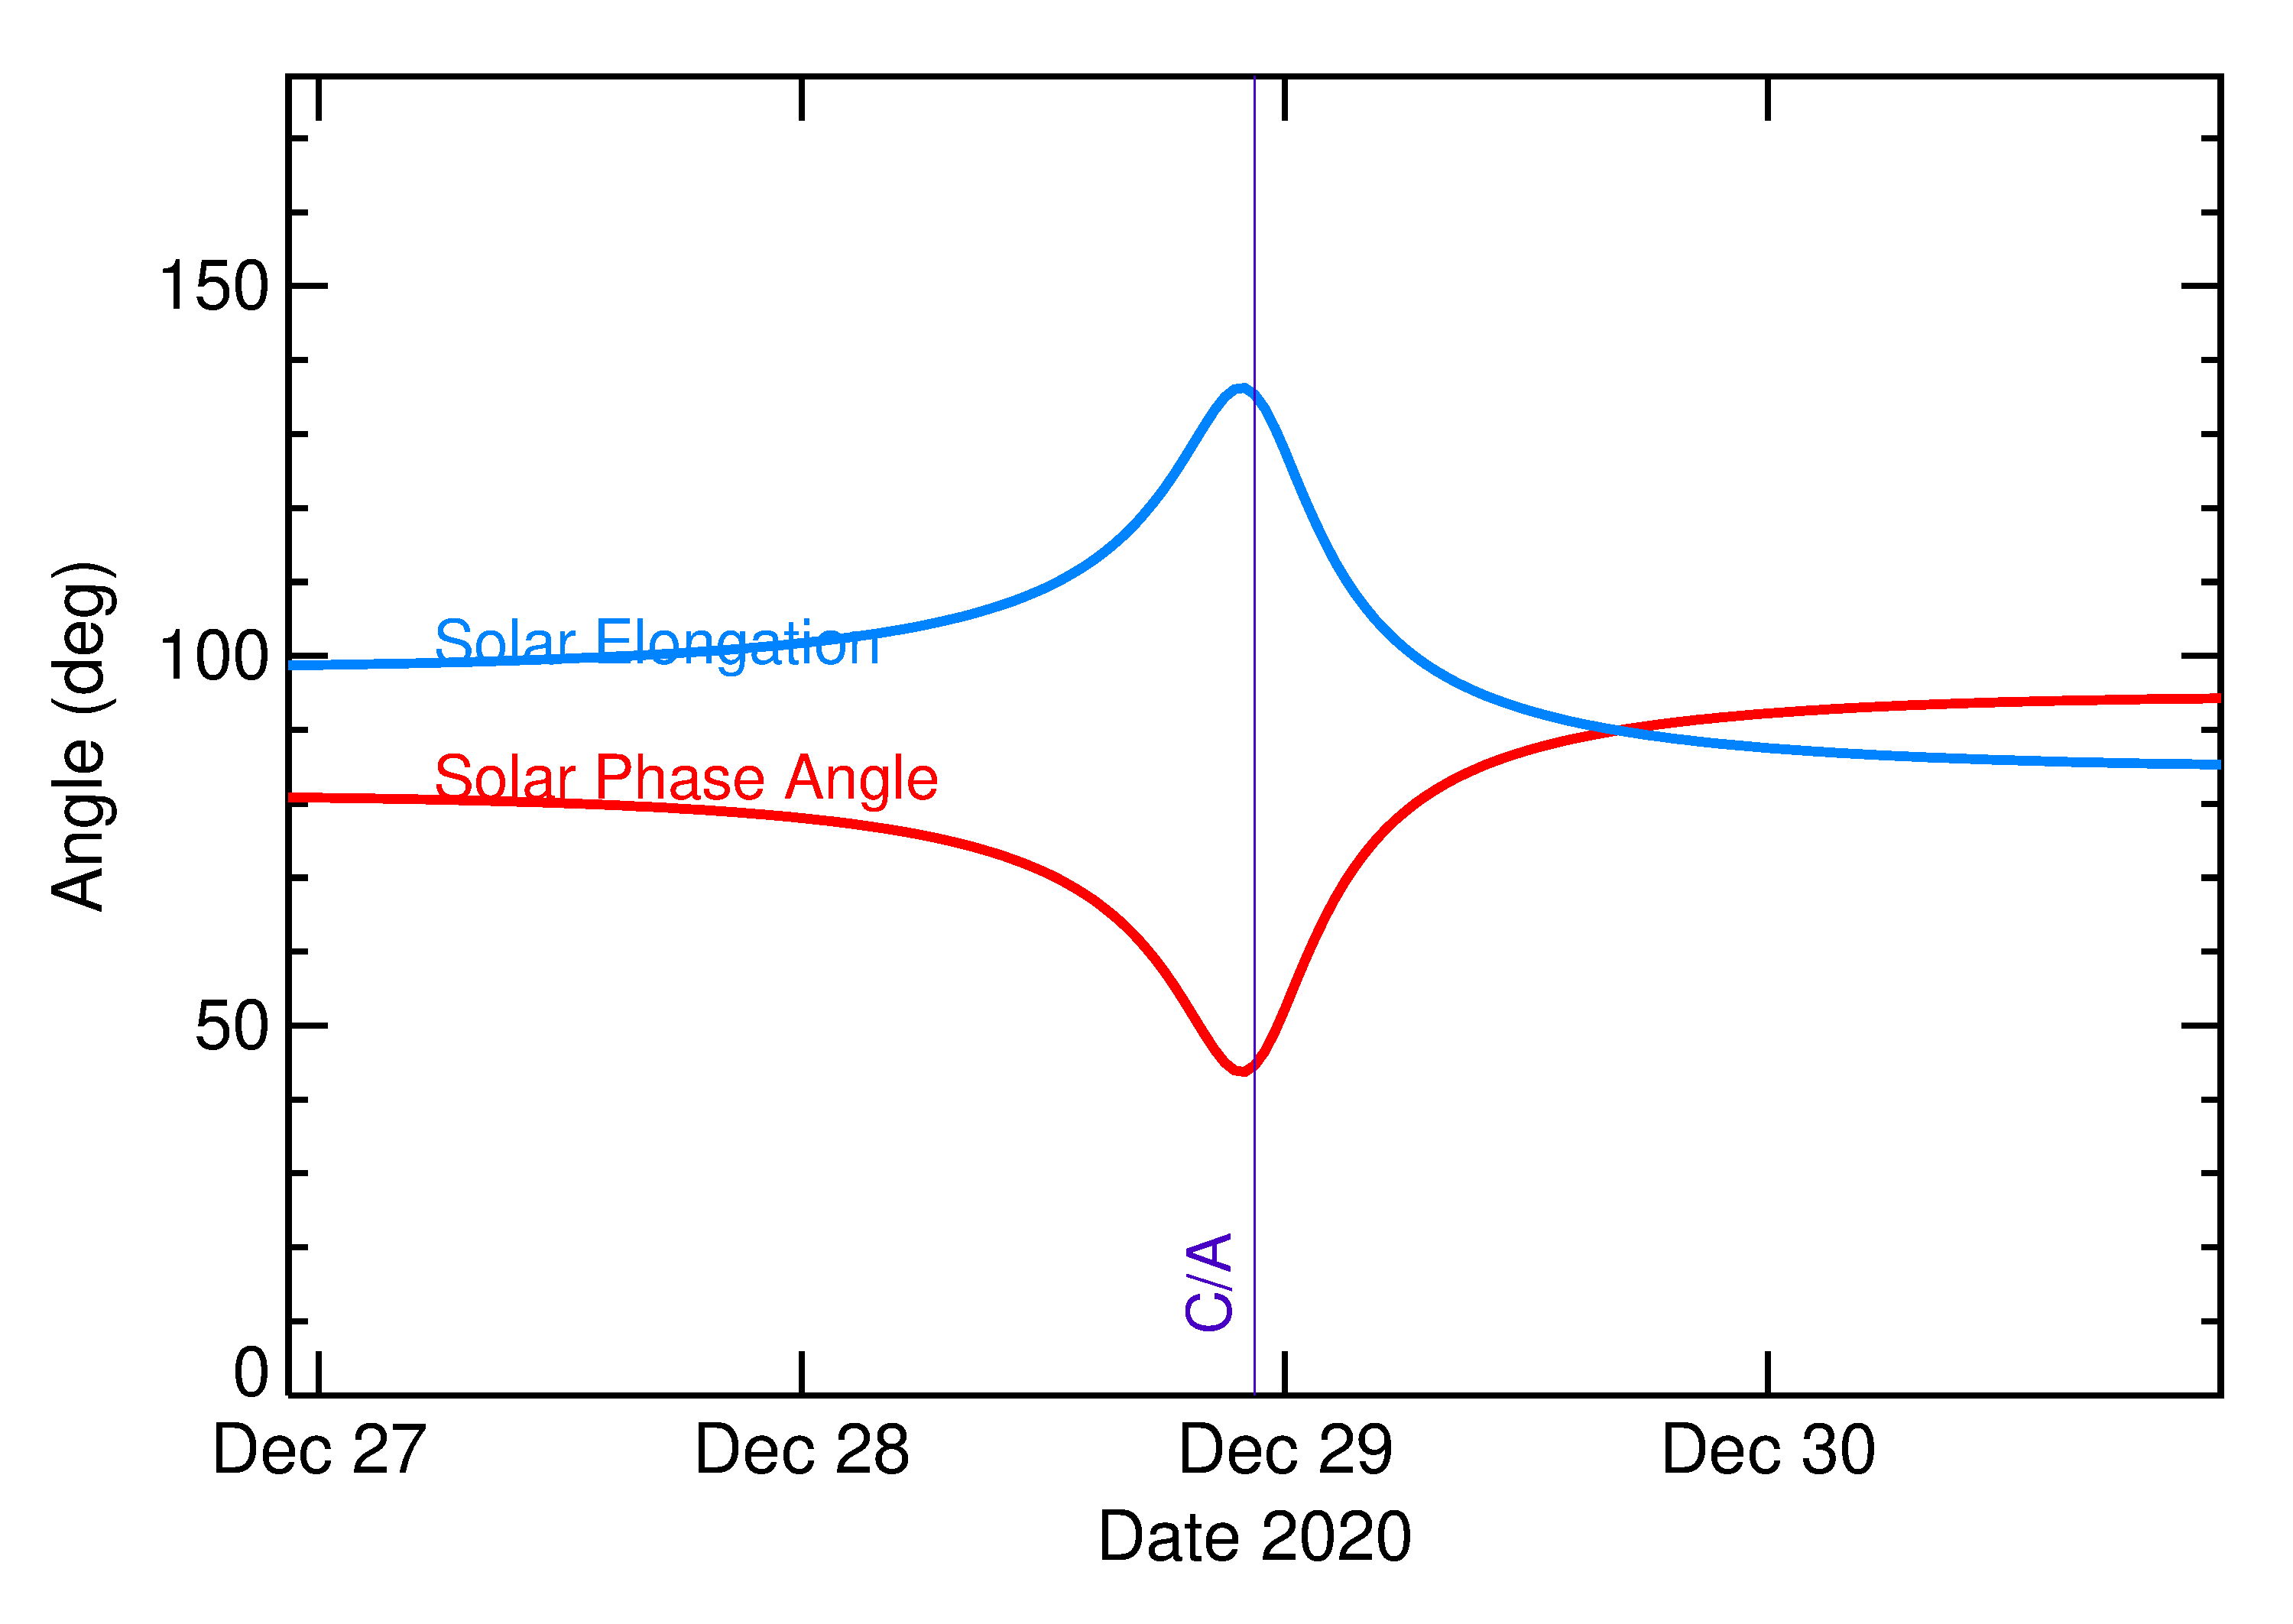 Solar Elongation and Solar Phase Angle of 2020 YS4 in the days around closest approach